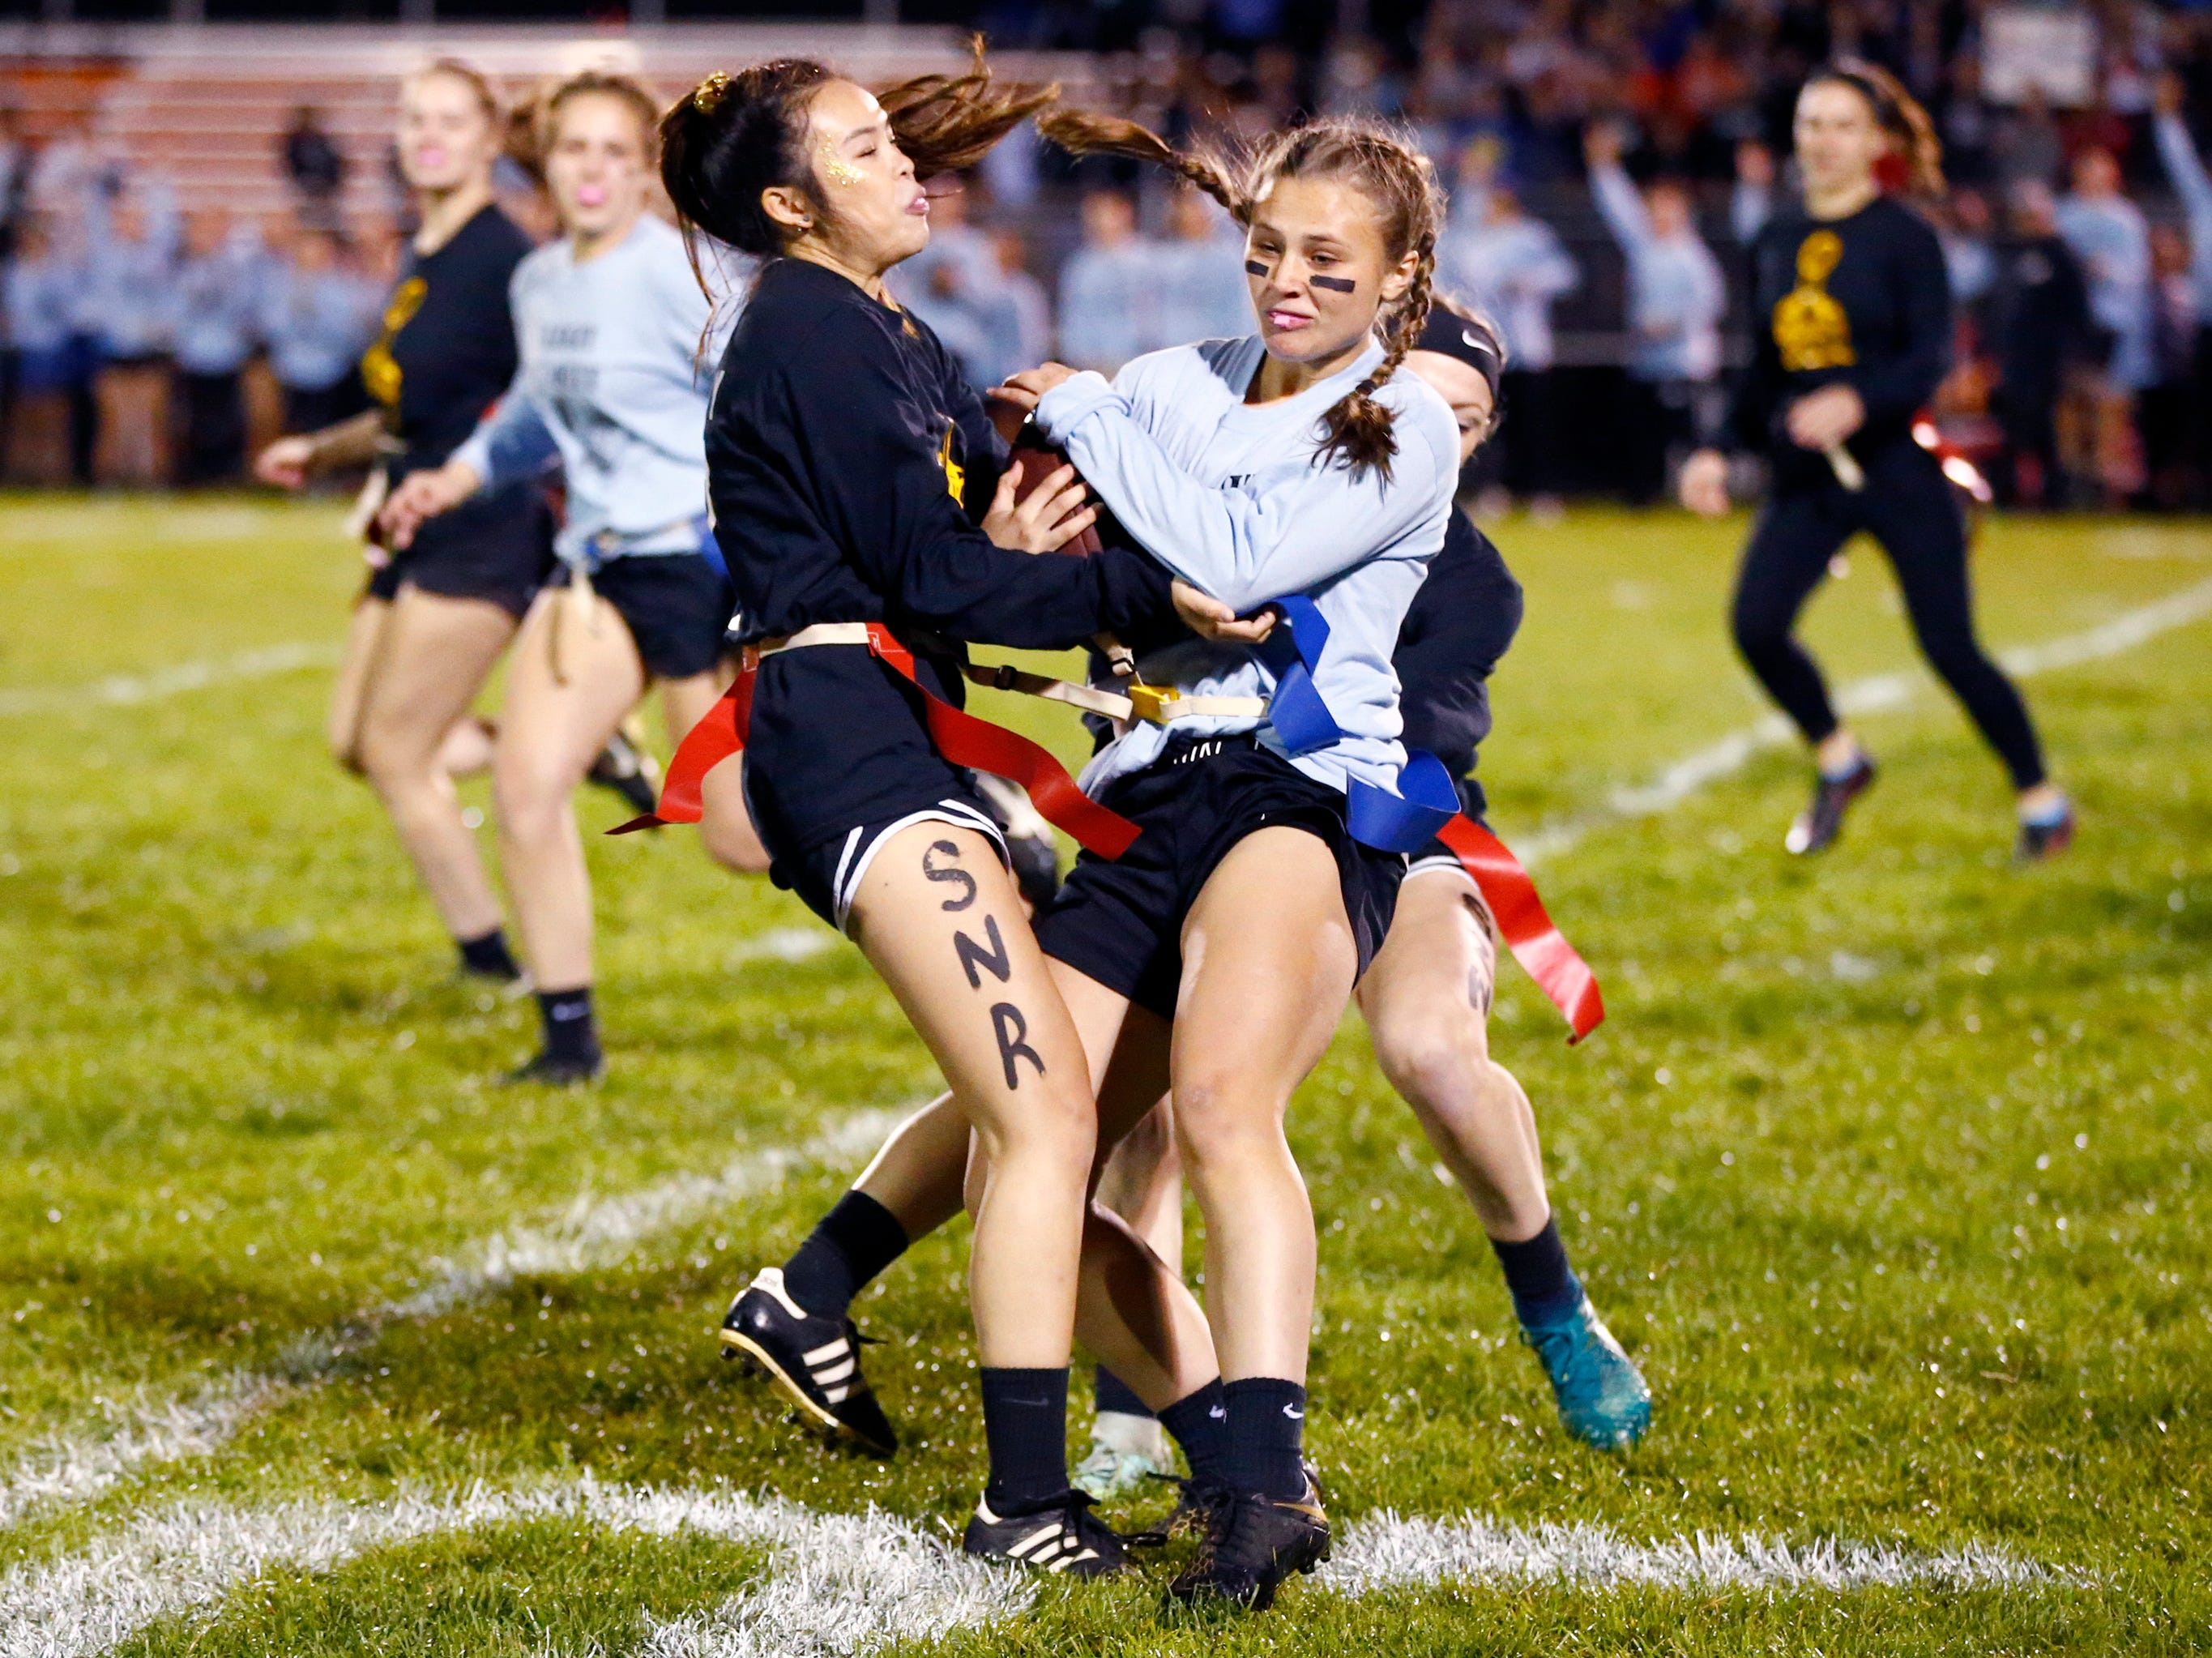 Senior girls in black took on the Junior Girls in a Homecoming Powder Puff football game at Grafton High School on Sept. 27.